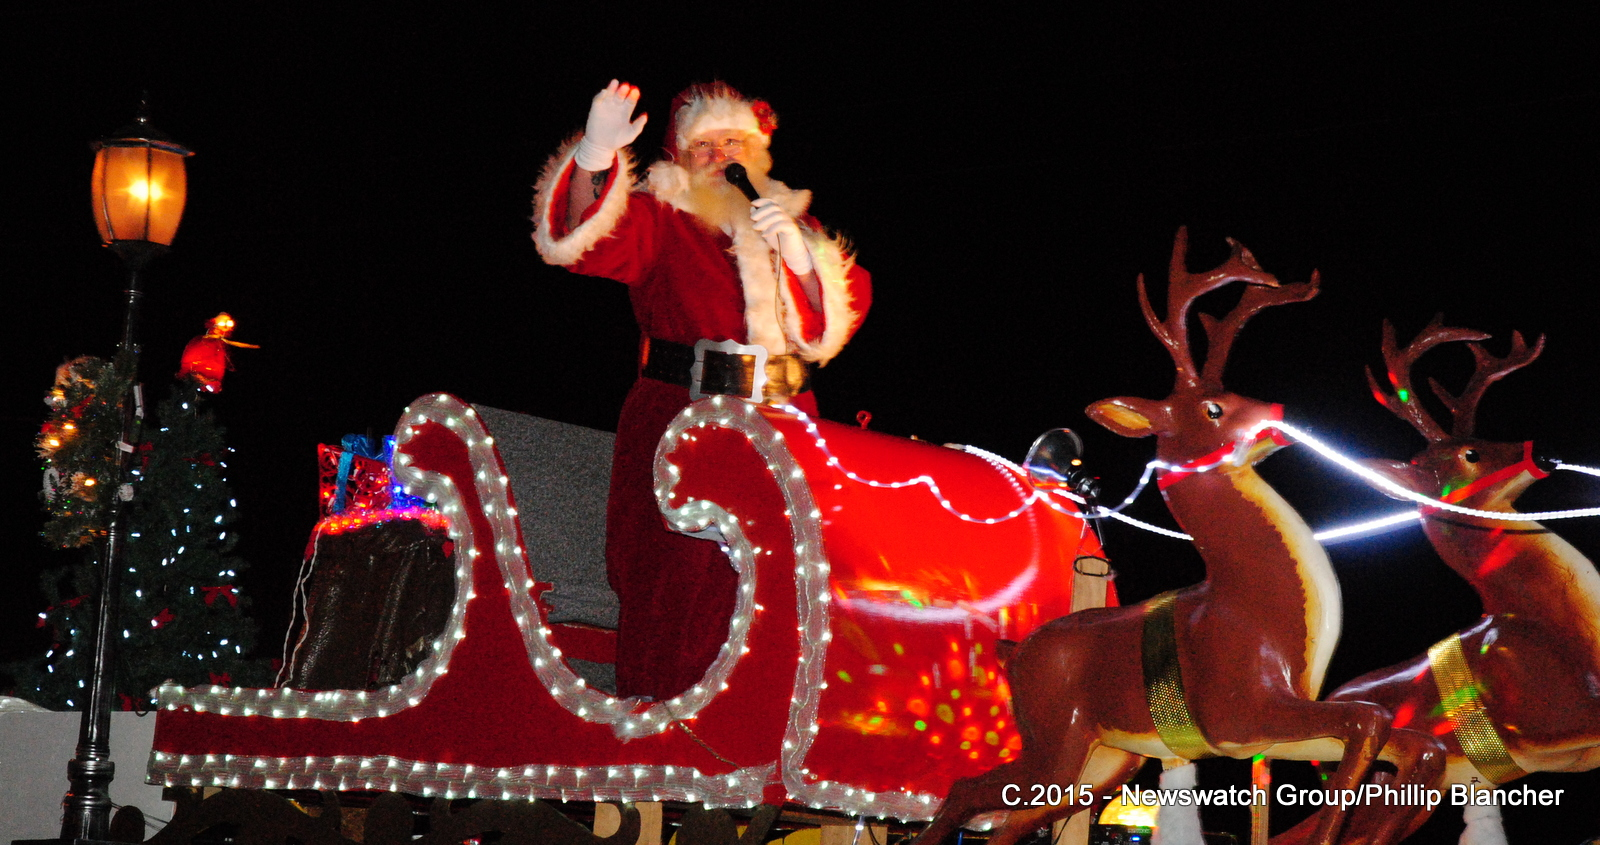 The man of the hour at the Cornwall Santa Claus Parade on November 21, 2015 (Newswatch Group/Phillip Blancher)